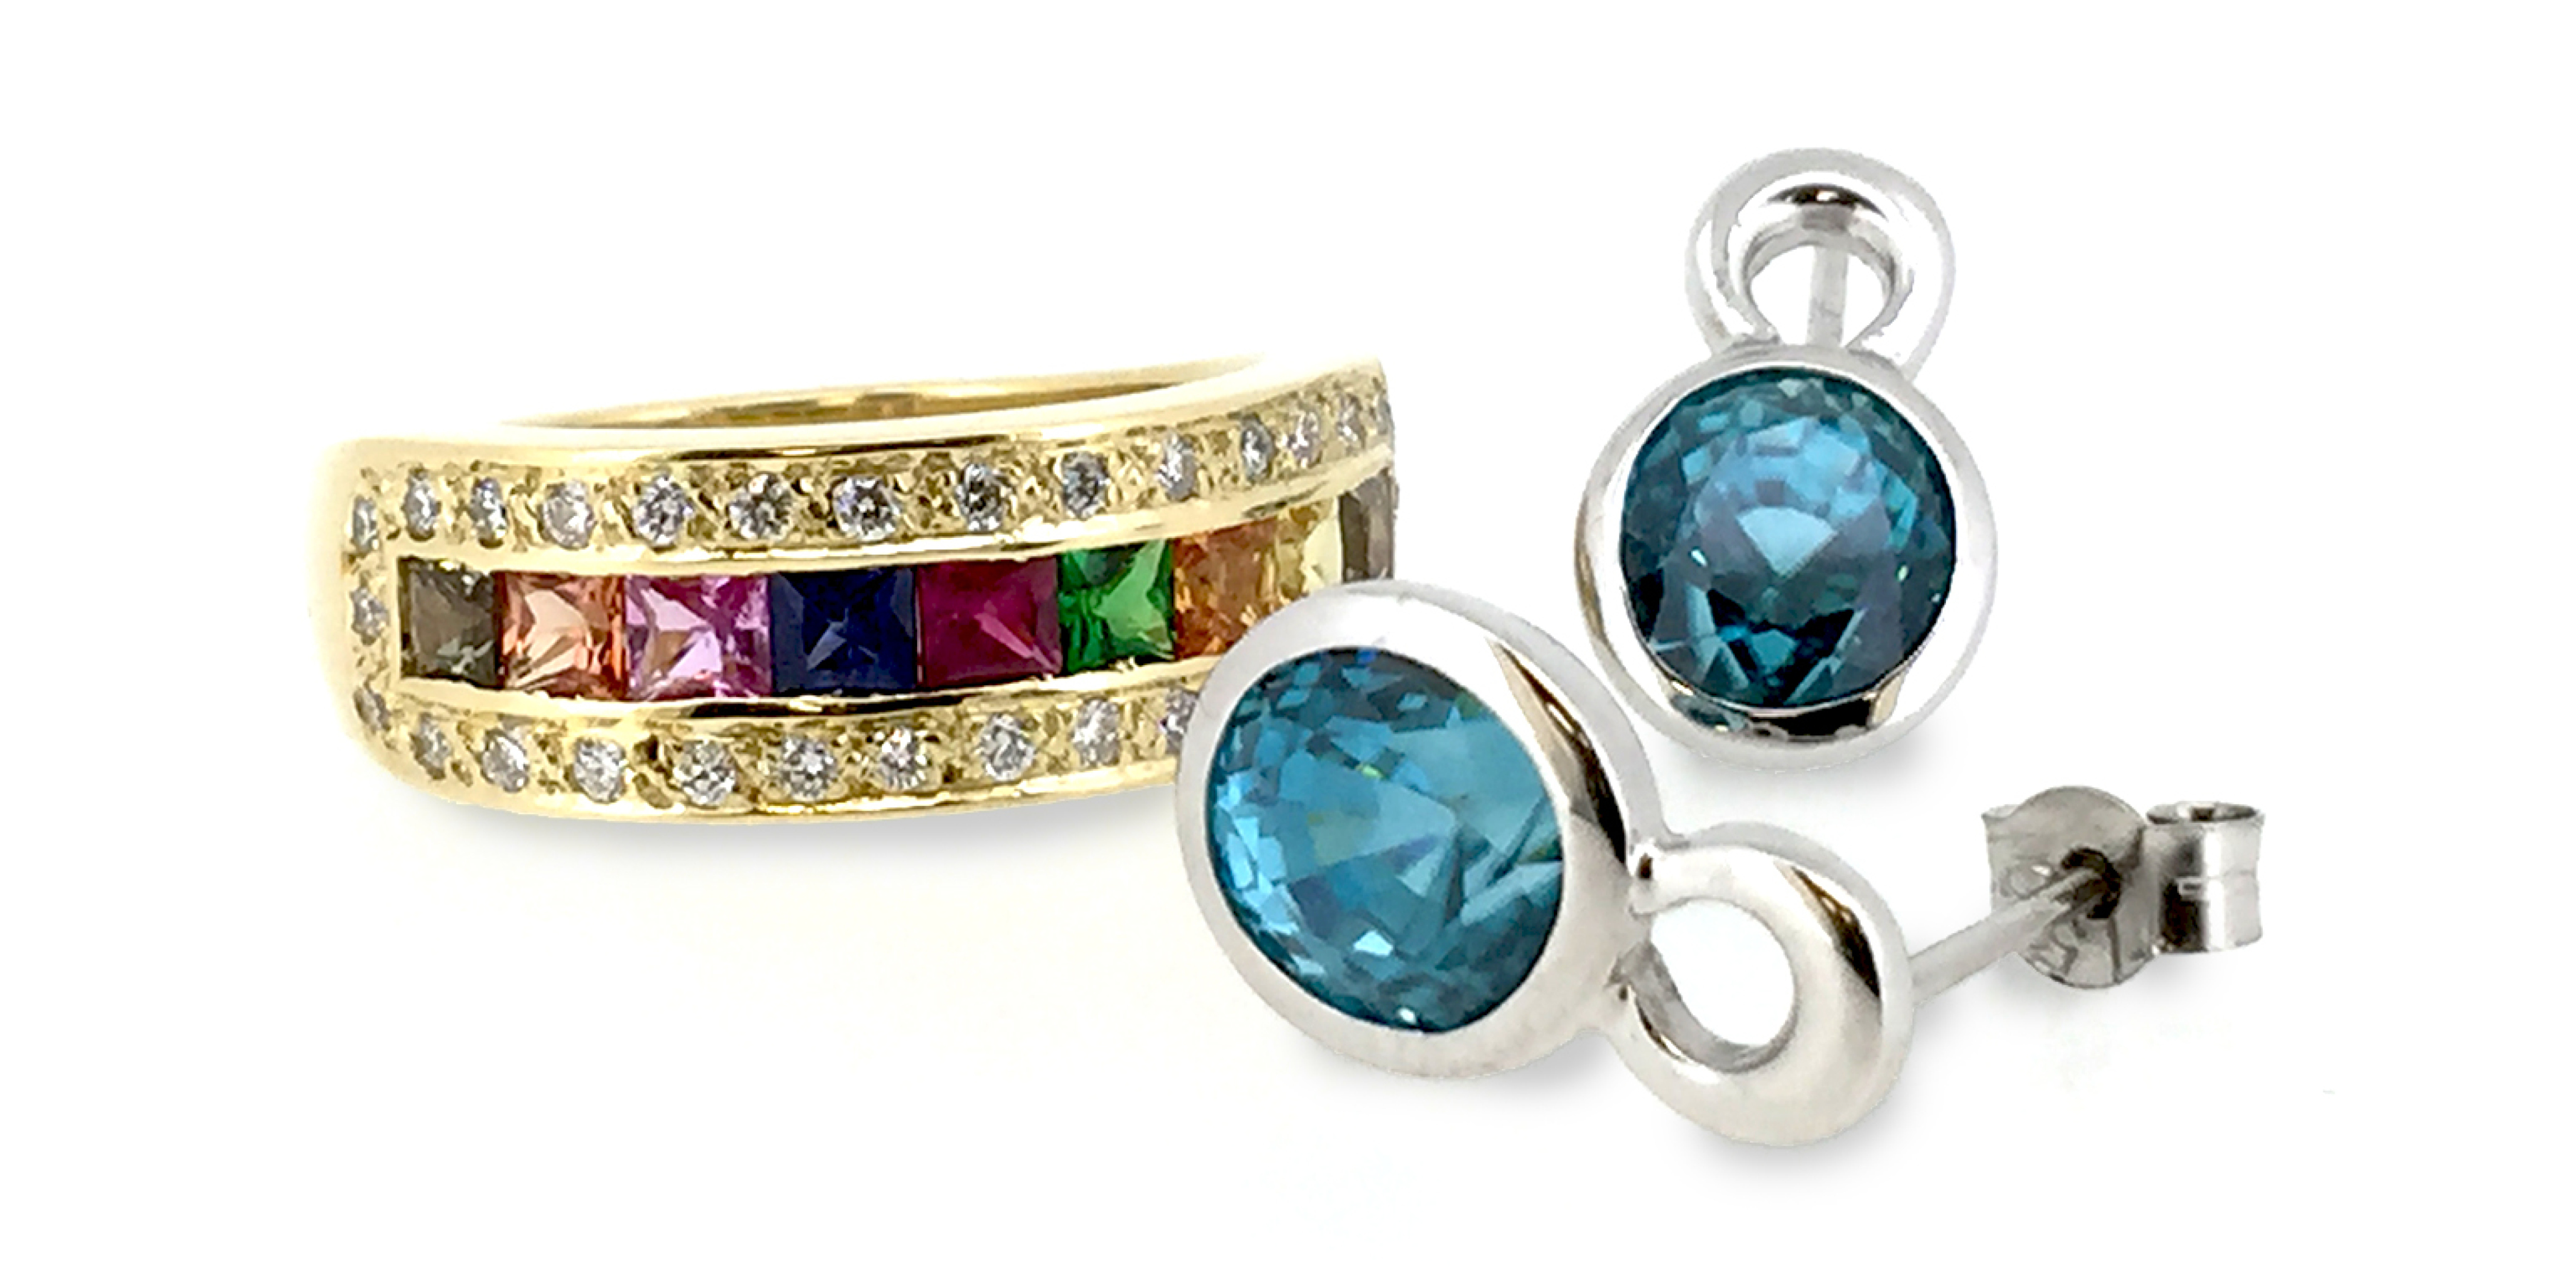 From our workshop - Originals Jewellers & Gallery